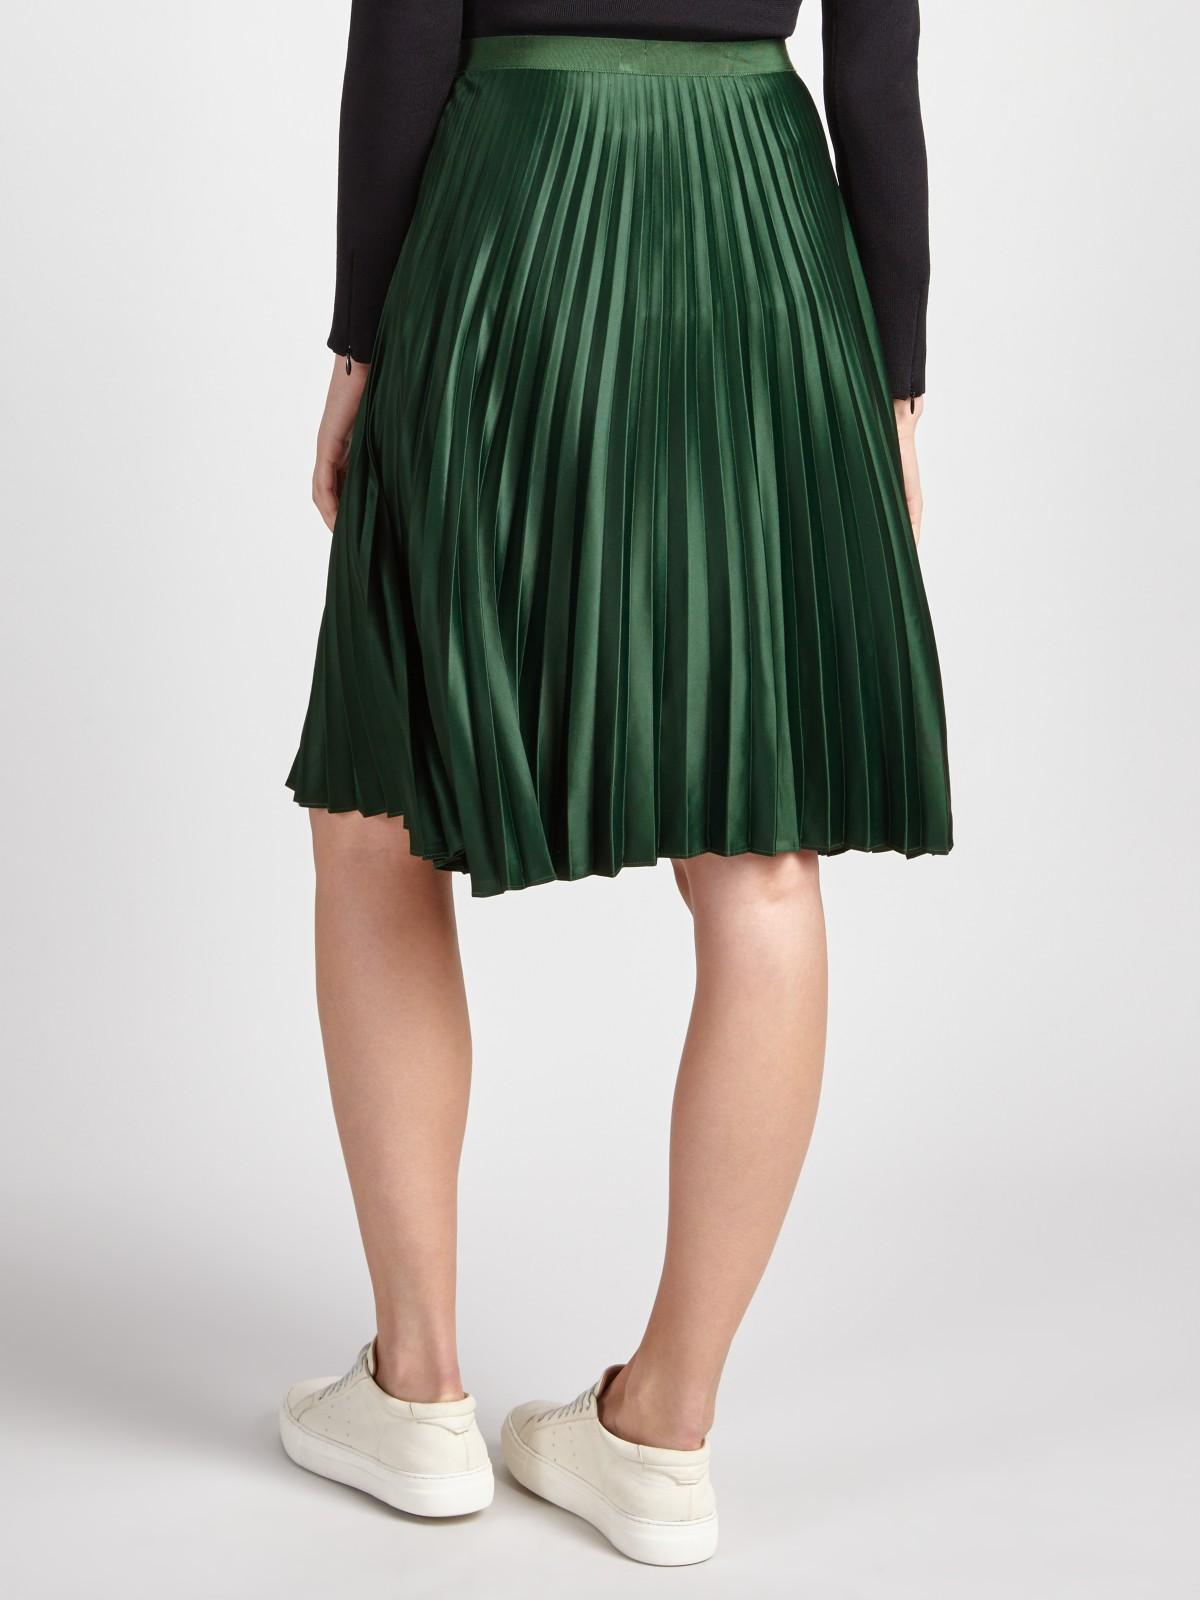 f6a206818e Maison Scotch Pleated Skirt in Green - Lyst